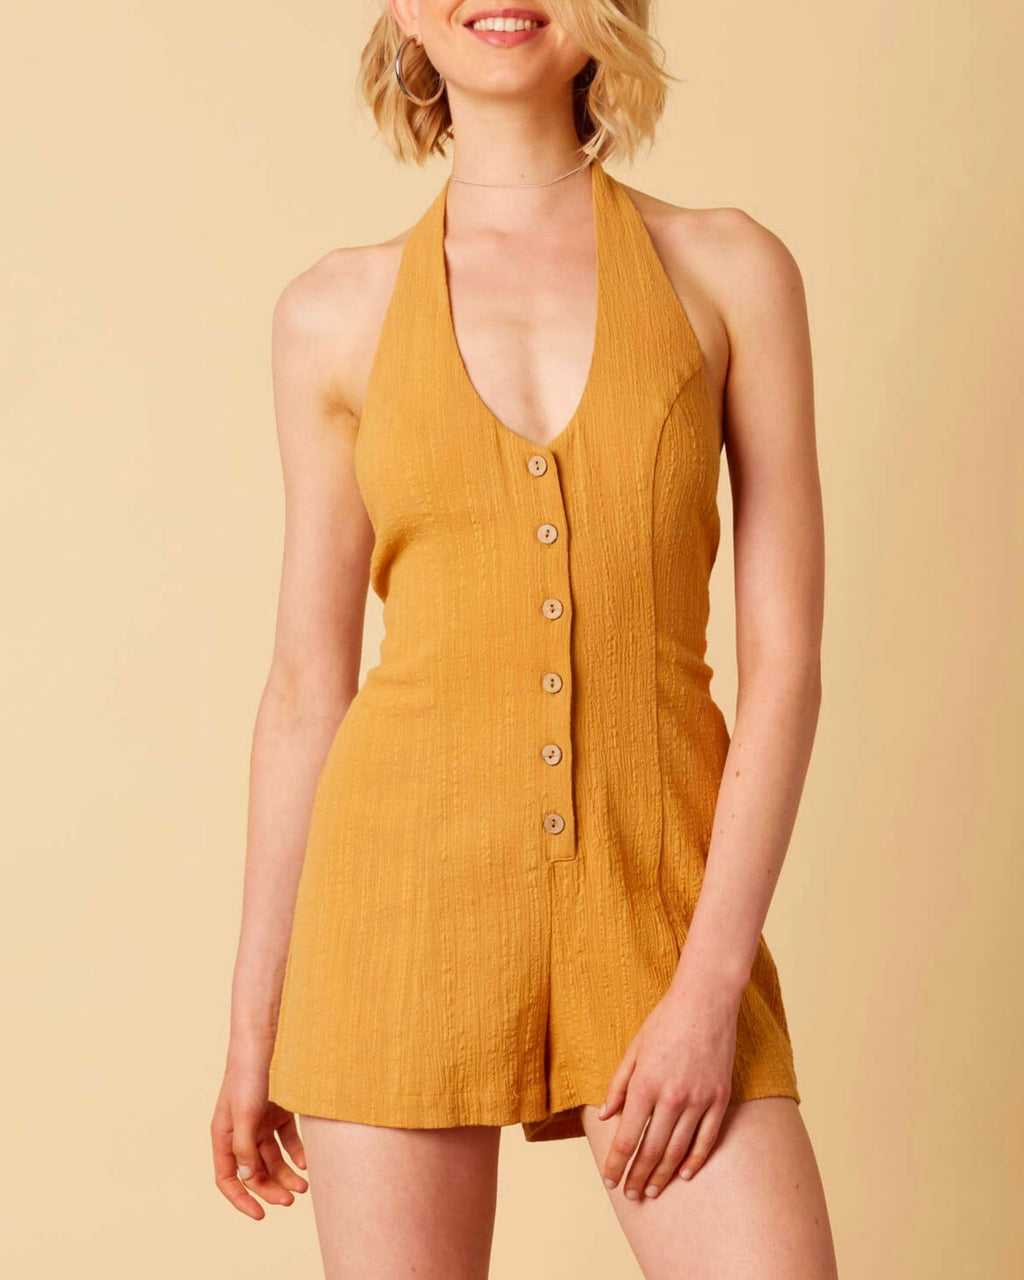 cotton candy - fairgrounds romper - dijon mustard